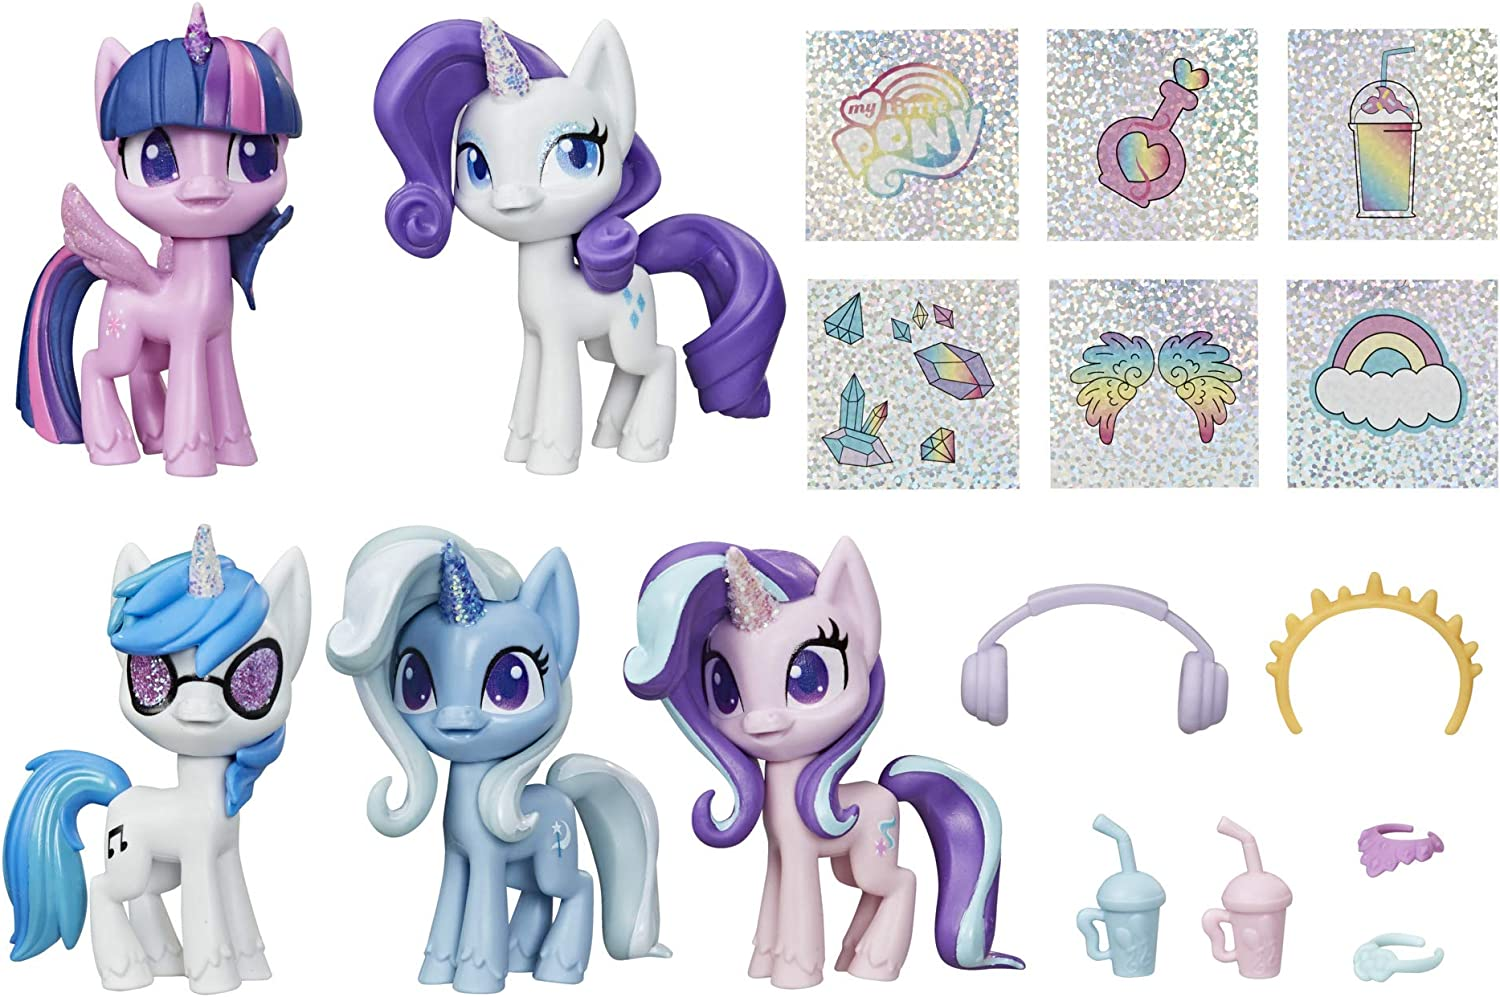 Amazon Com My Little Pony Unicorn Sparkle Collection Set Of 5 Toy Pony 3 Inch Figures With Glittery Unicorn Horns And 12 Surprise Accessories Toys Games